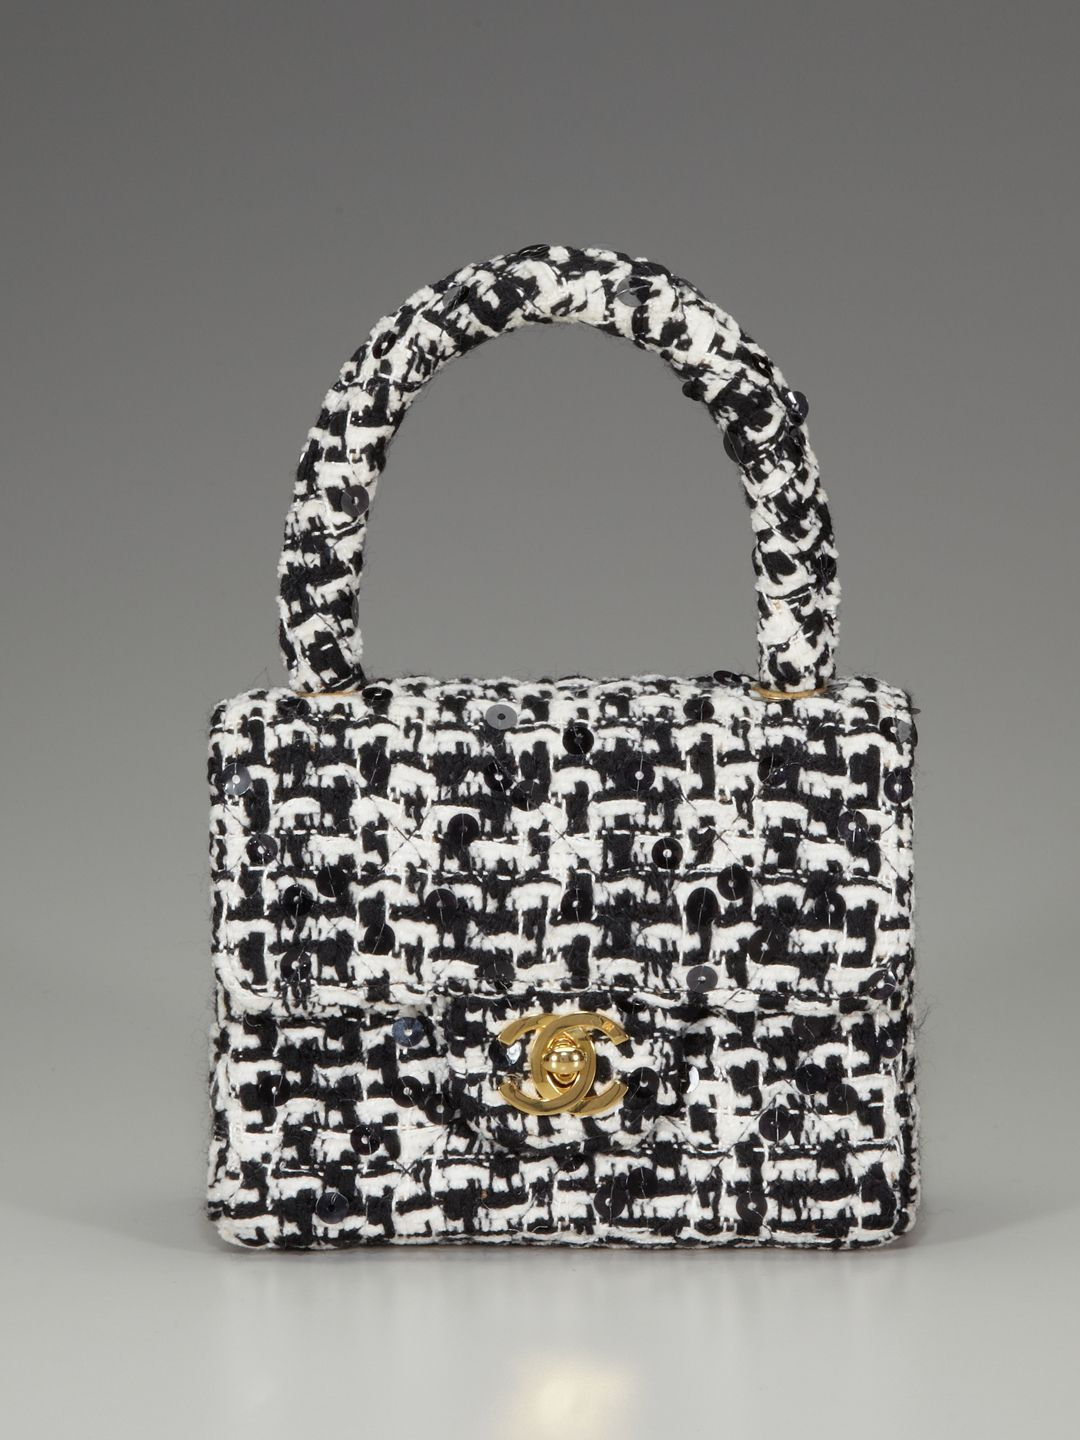 66bf300df255 Chanel Tweed with Sequins by Vintage Handbags and Jewelry at Gilt ...